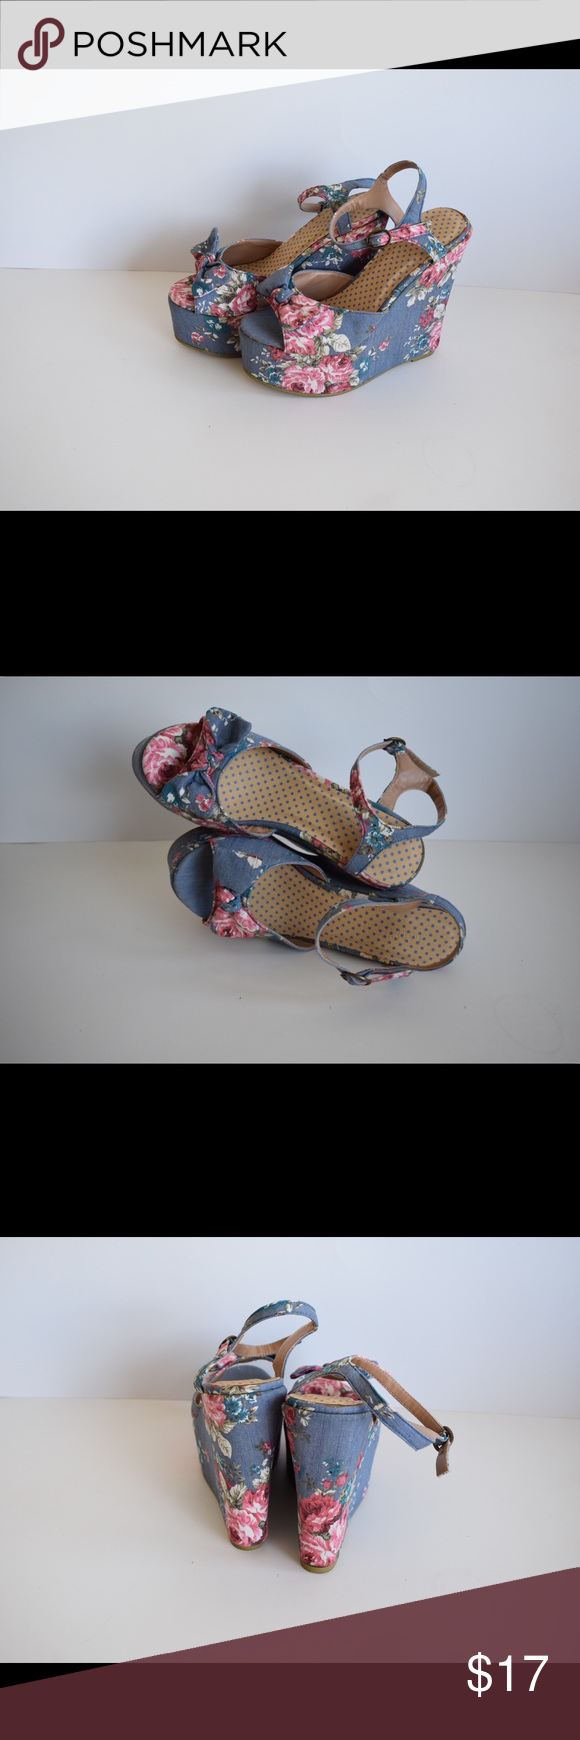 5208ae510746 NWT Forever 21 Denim Blue Floral Wedges Size 8 New and unworn Forever 21  Denim Blue and pink flower wedges. Open toe. Size 8. NWT Forever 21 Shoes  Wedges